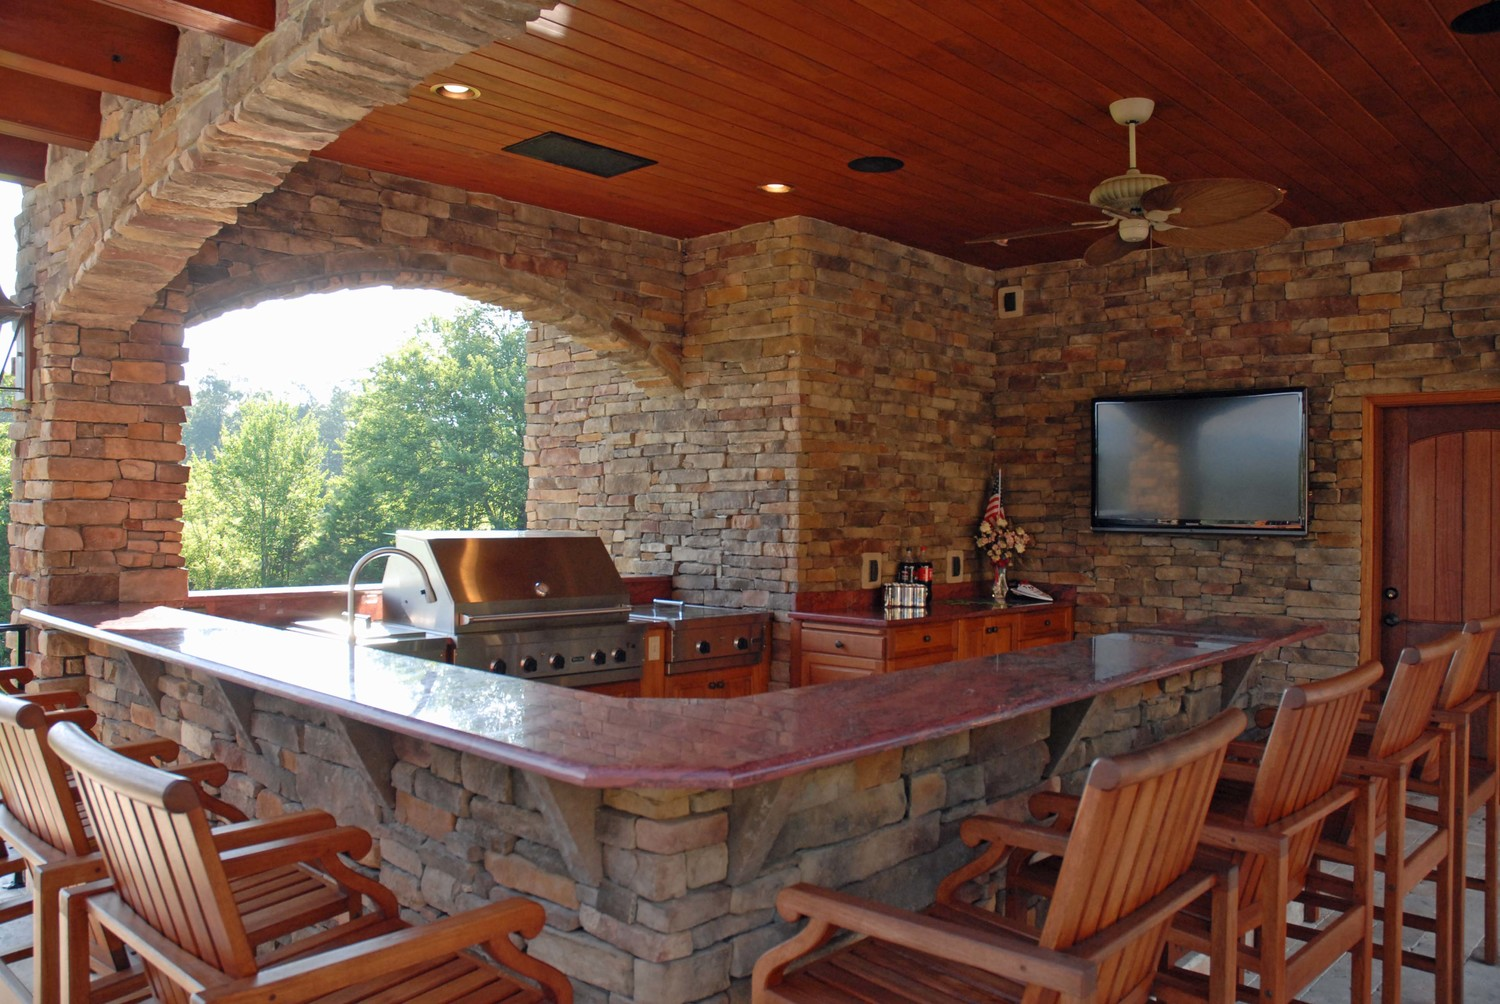 Stone Work — Bryant Lawn and Sprinkler Fort Worth on rustic wood outdoor kitchen, rustic tin outdoor kitchen, rustic stone outdoor kitchen,